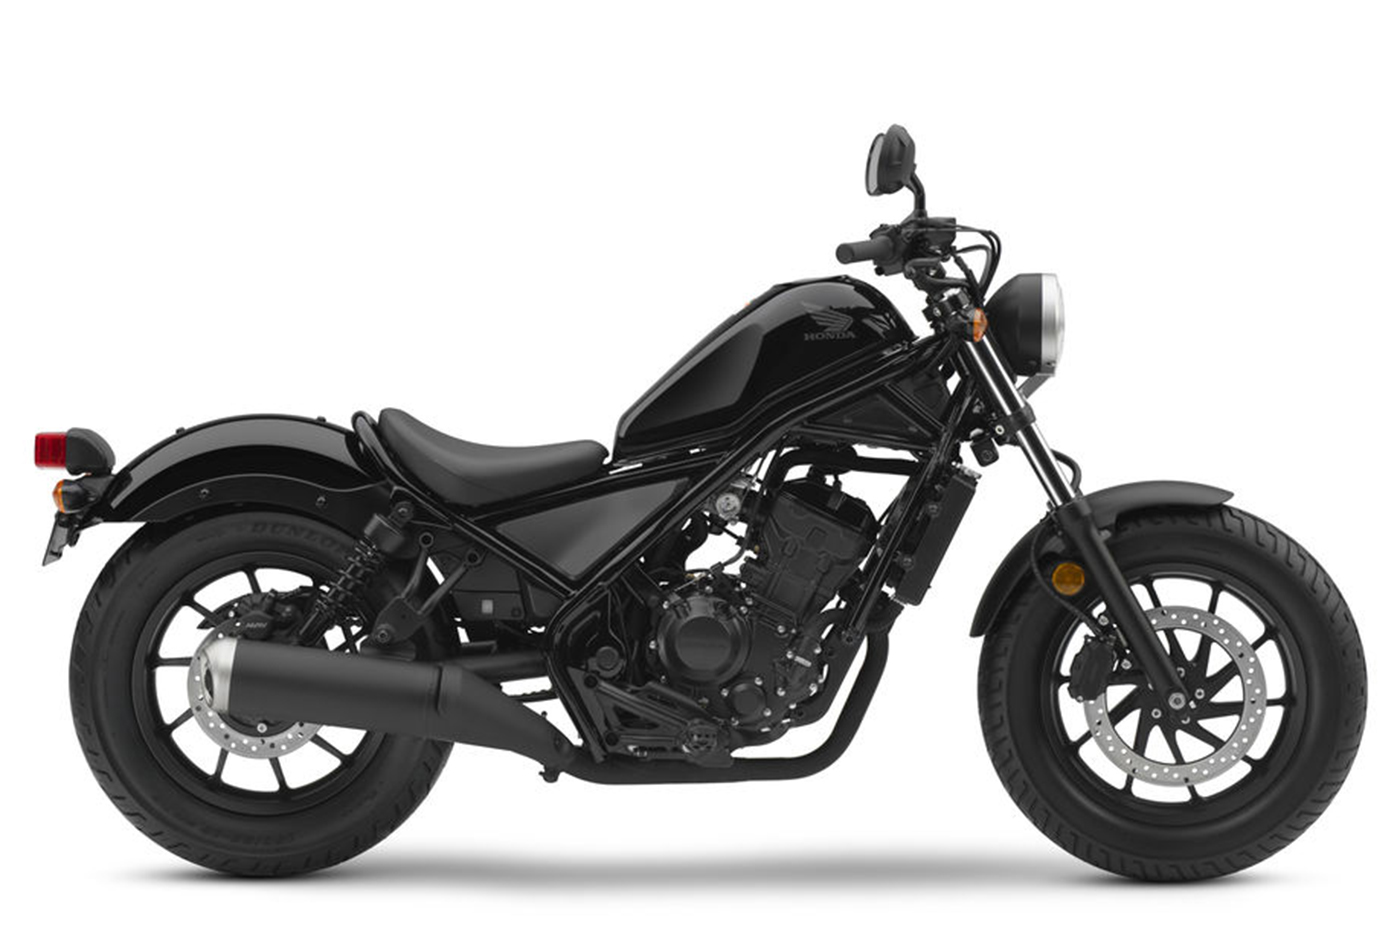 honda-rebel-250-2017-3.jpg